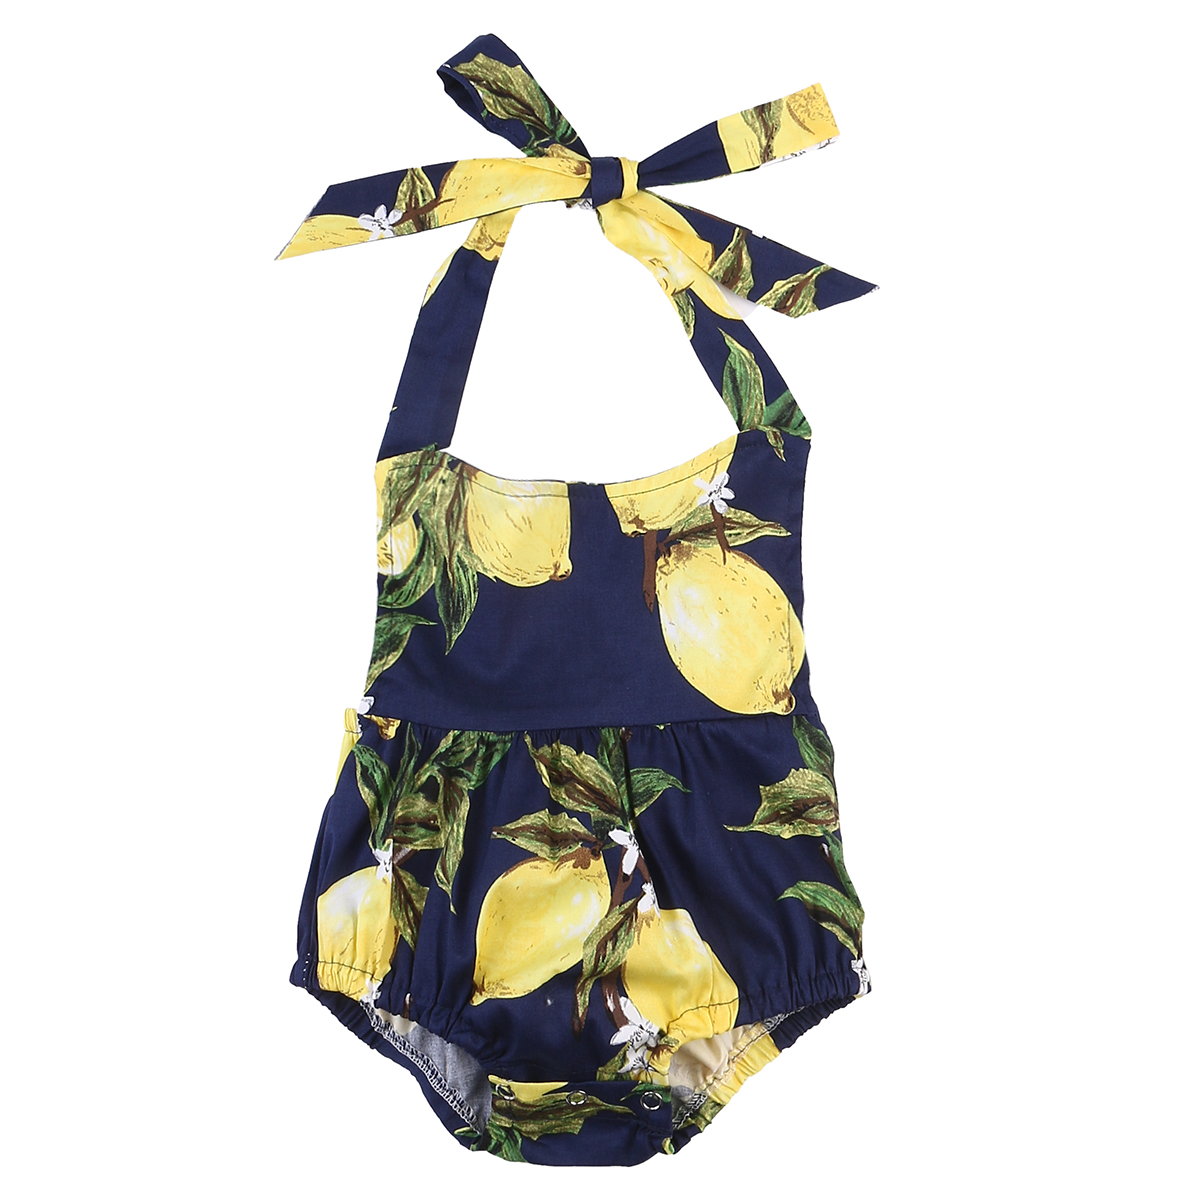 Summer 2017 Newborn Infant Baby Girls Romper Pear Floral Sleeveless Romper Cute Jumpsuit Outfit Baby Girl Clothing Sunsuit newborn infant baby girl clothes strap lace floral romper jumpsuit outfit summer cotton backless one pieces outfit baby onesie